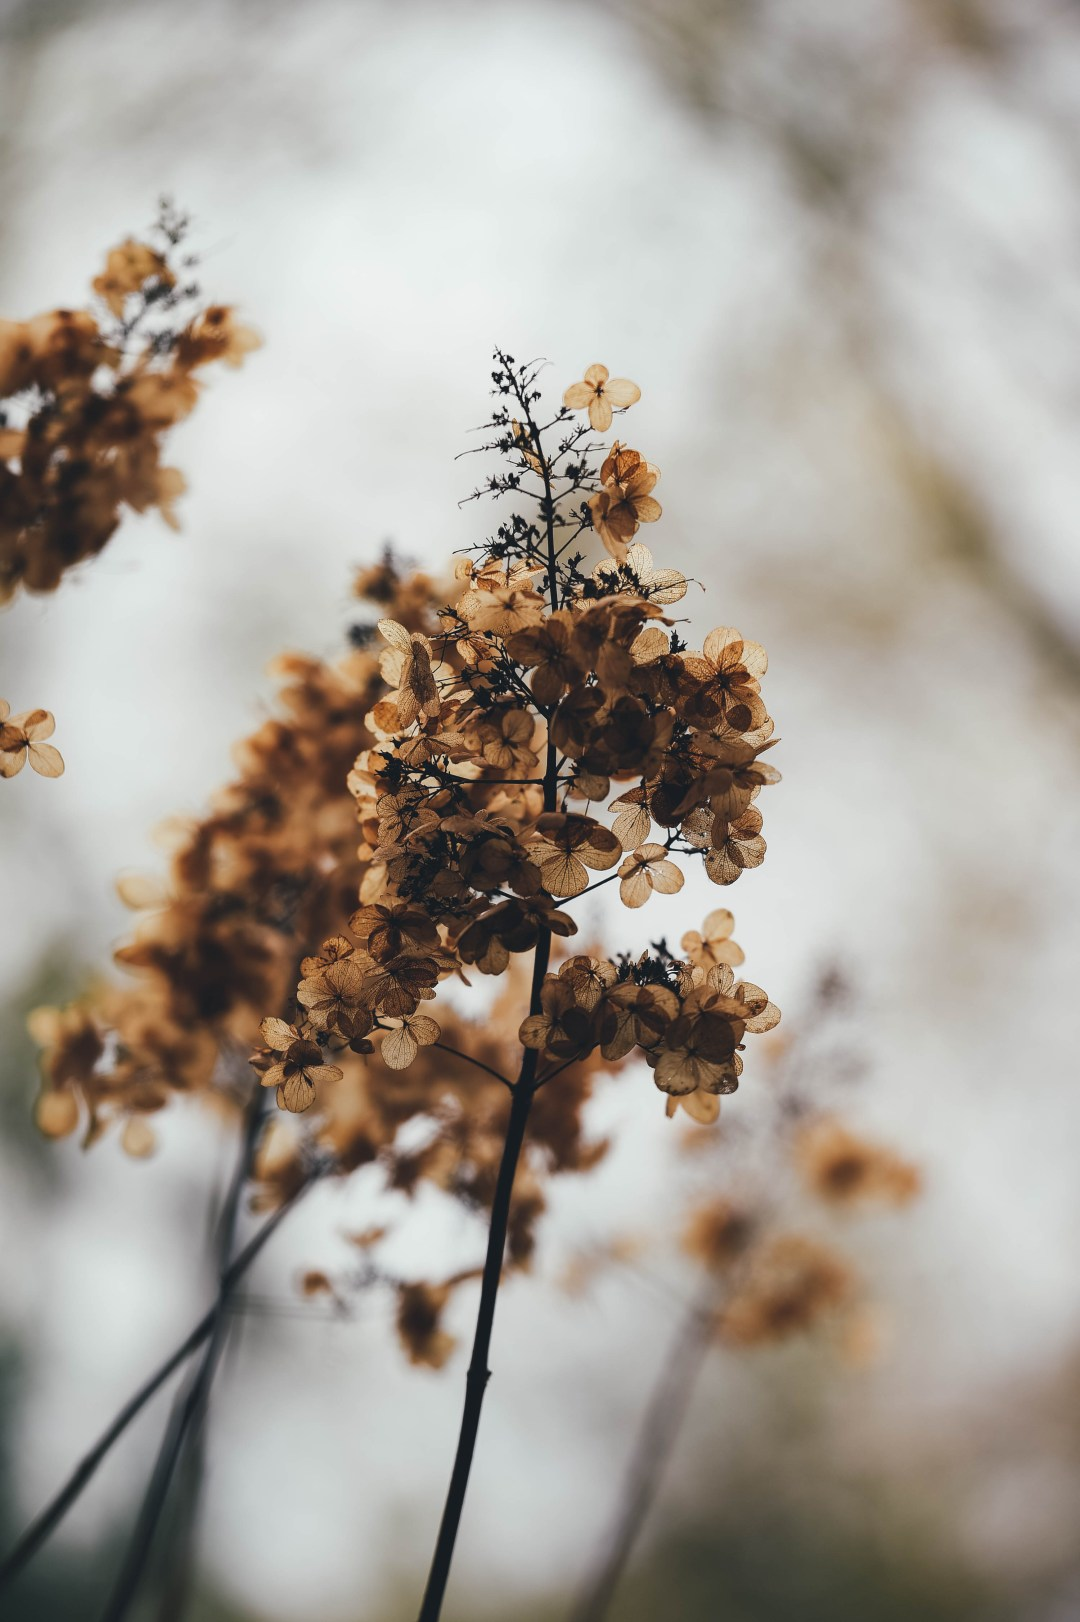 Hd Fall Winter Wallpaper Bleak Wilting Hydrangea Photo By Annie Spratt